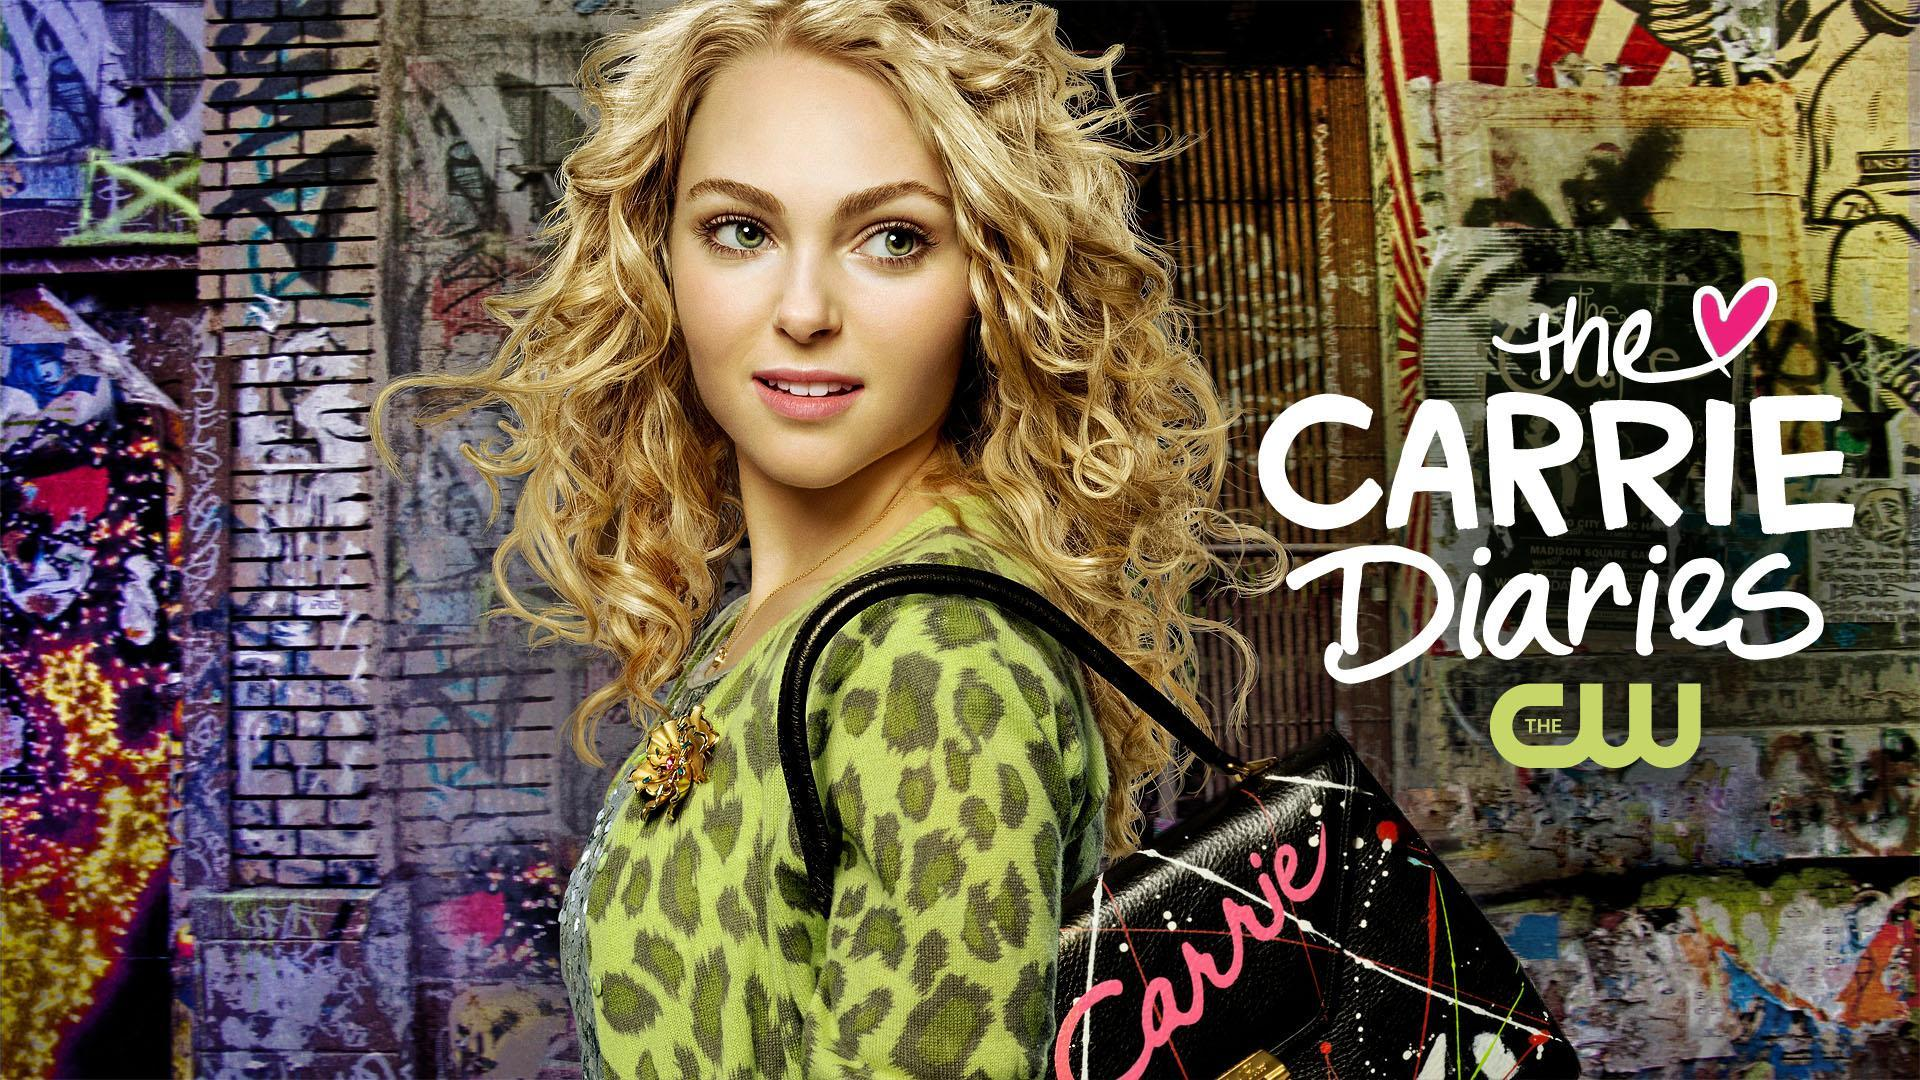 The Carrie Diaries (TV Series) - Promo